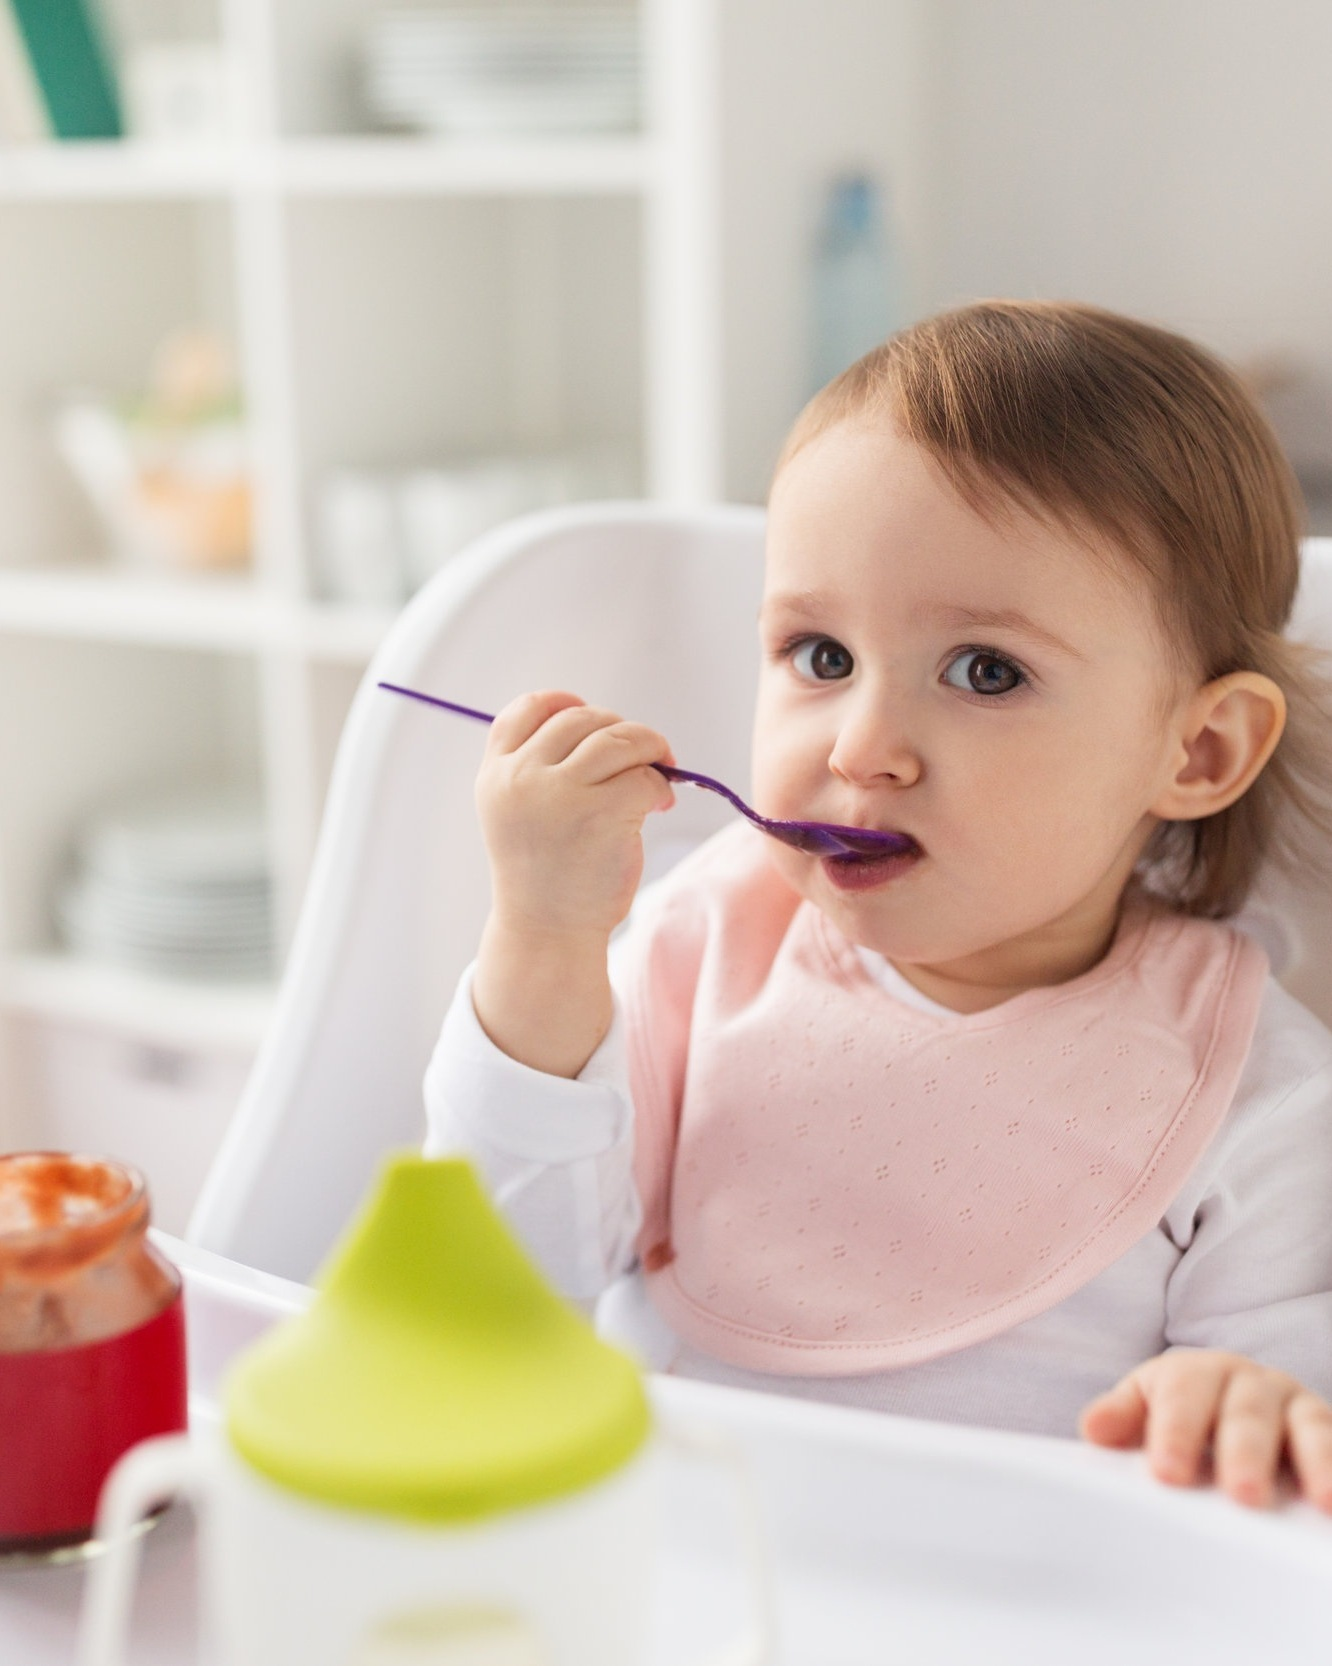 baby-girl-with-spoon-eating-puree-from-jar-at-PJTFBNU.jpg